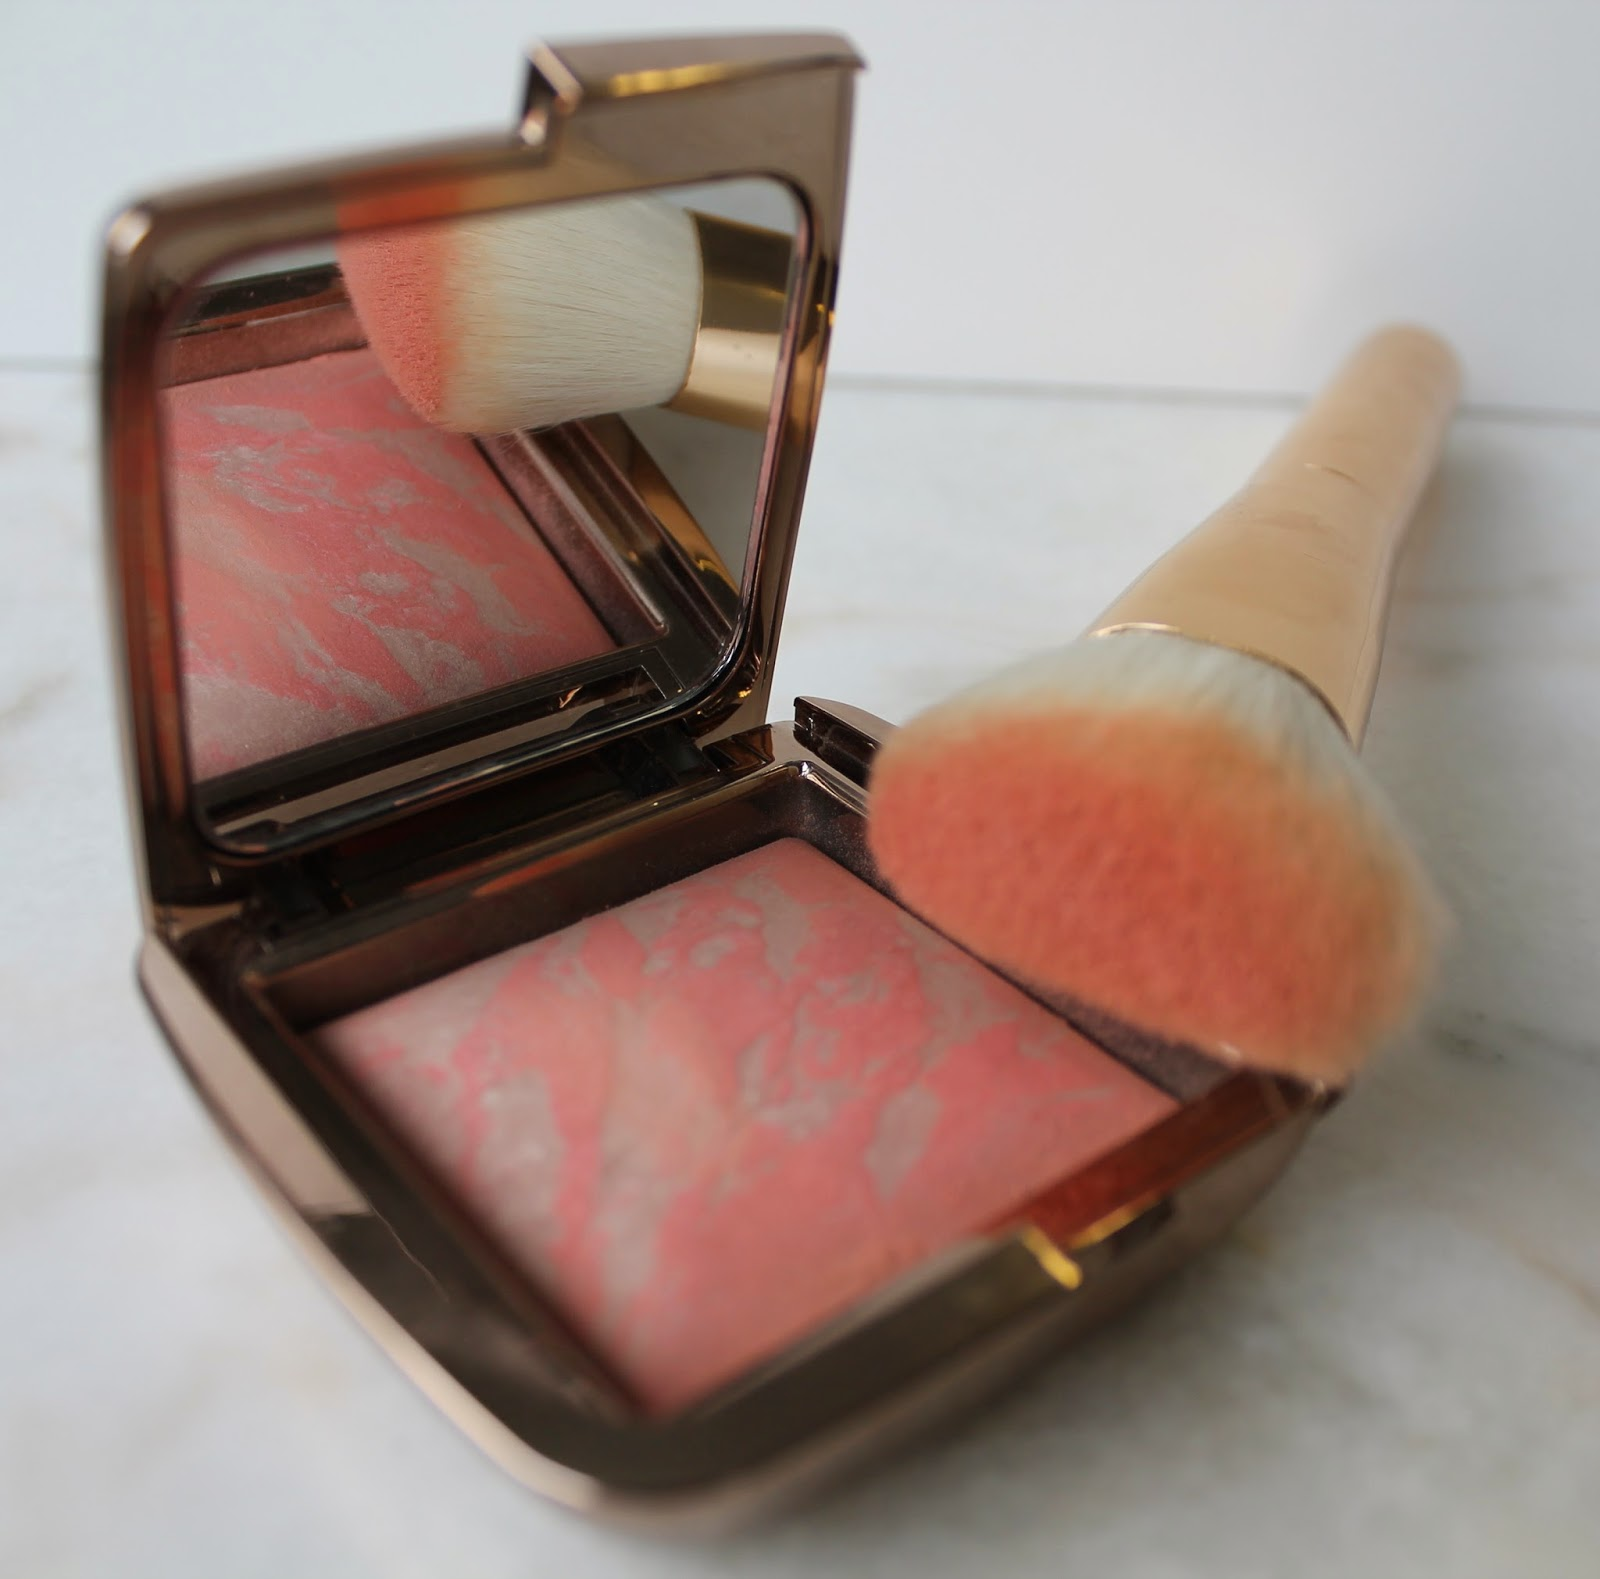 Hourglass: Ambient Lighting Blush – Dim Infusion